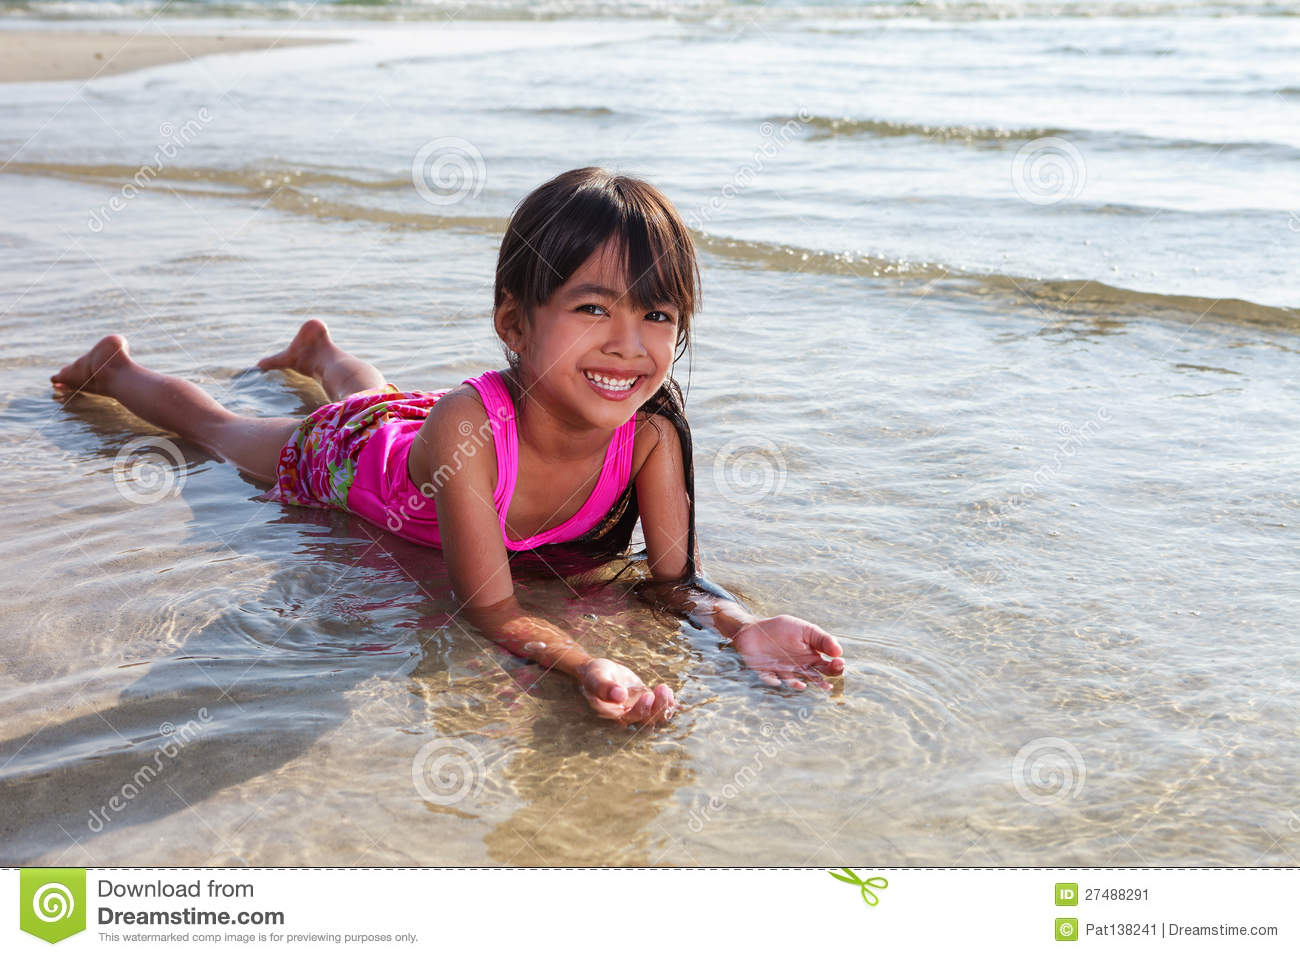 Girl Laying In Water On The Beach Stock Image - Image Of Relax, Midday 27488291-4120